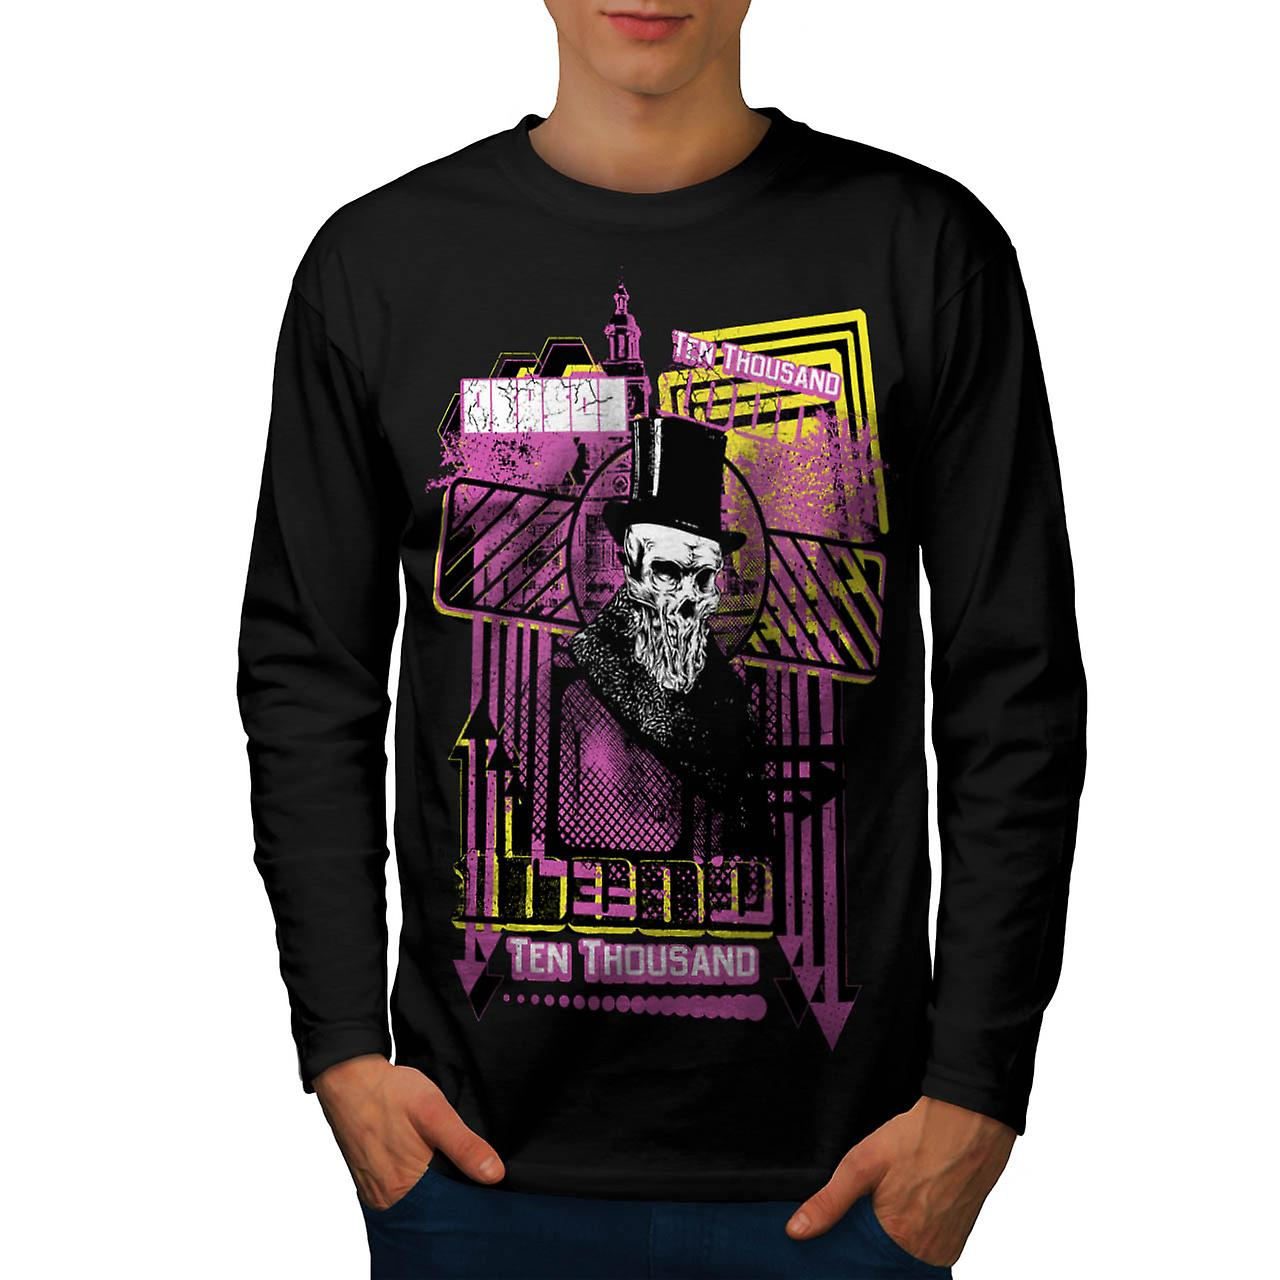 Reason For Death Gent Haunted Men Black Long Sleeve T-shirt | Wellcoda